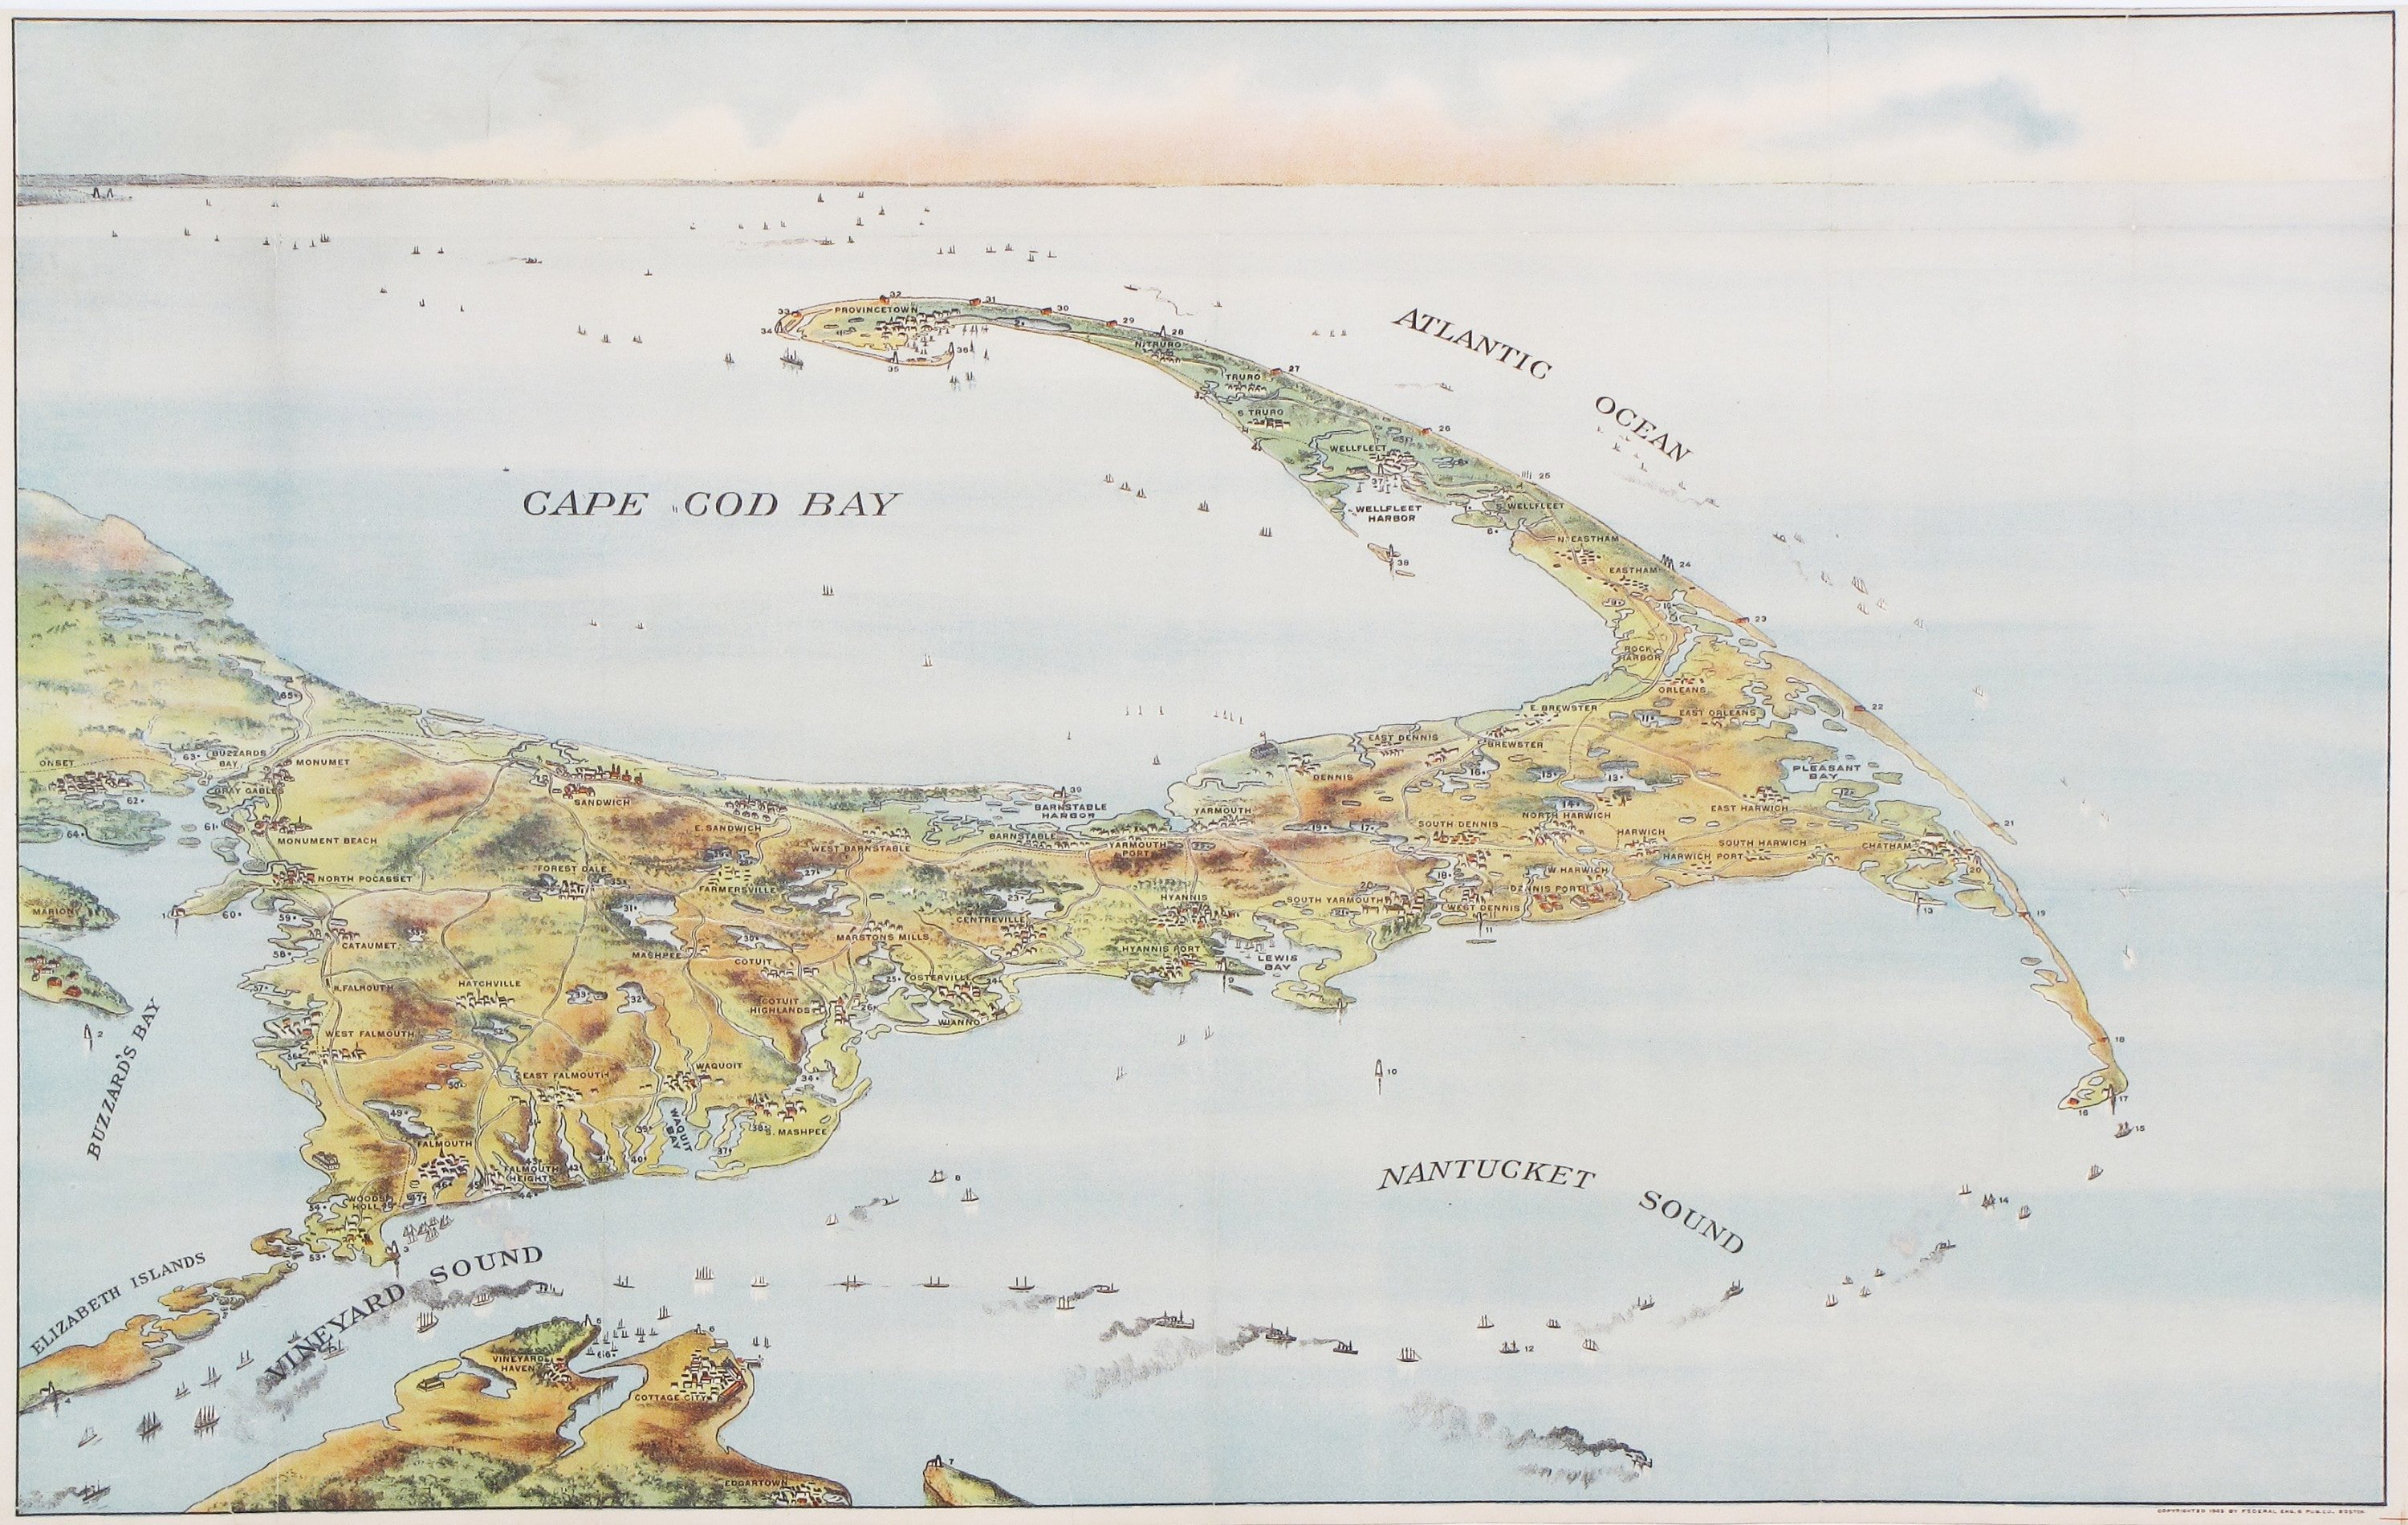 Charming birds-eye view of Cape Cod - Rare & Antique Maps on boston harbor map, mbta commuter rail boston map, suffolk county boston map, worcester boston map, long island boston map, alabama boston map, needham boston map, columbia boston map, fort point channel boston map, deer island boston map, braintree boston map, atlantic ocean boston map, nantucket boston map, tennessee boston map, massachusetts boston map, plymouth boston map, shrewsbury boston map, medford boston map, phoenix boston map, pittsburgh boston map,